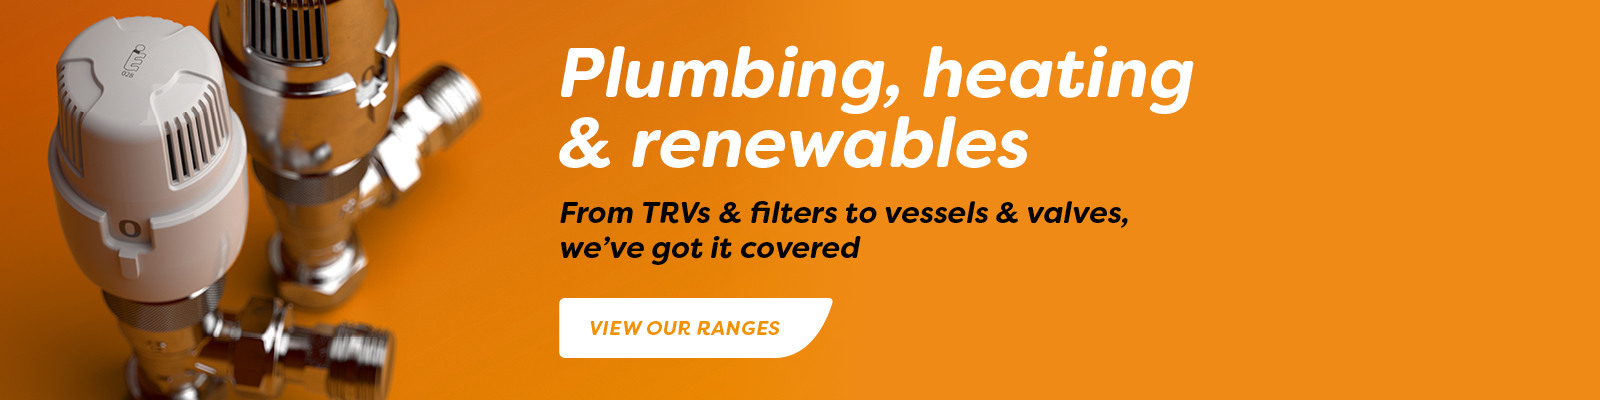 Plumbing, heating & renewables from TRV's & Filters to vessels & Valves, we've got it covered